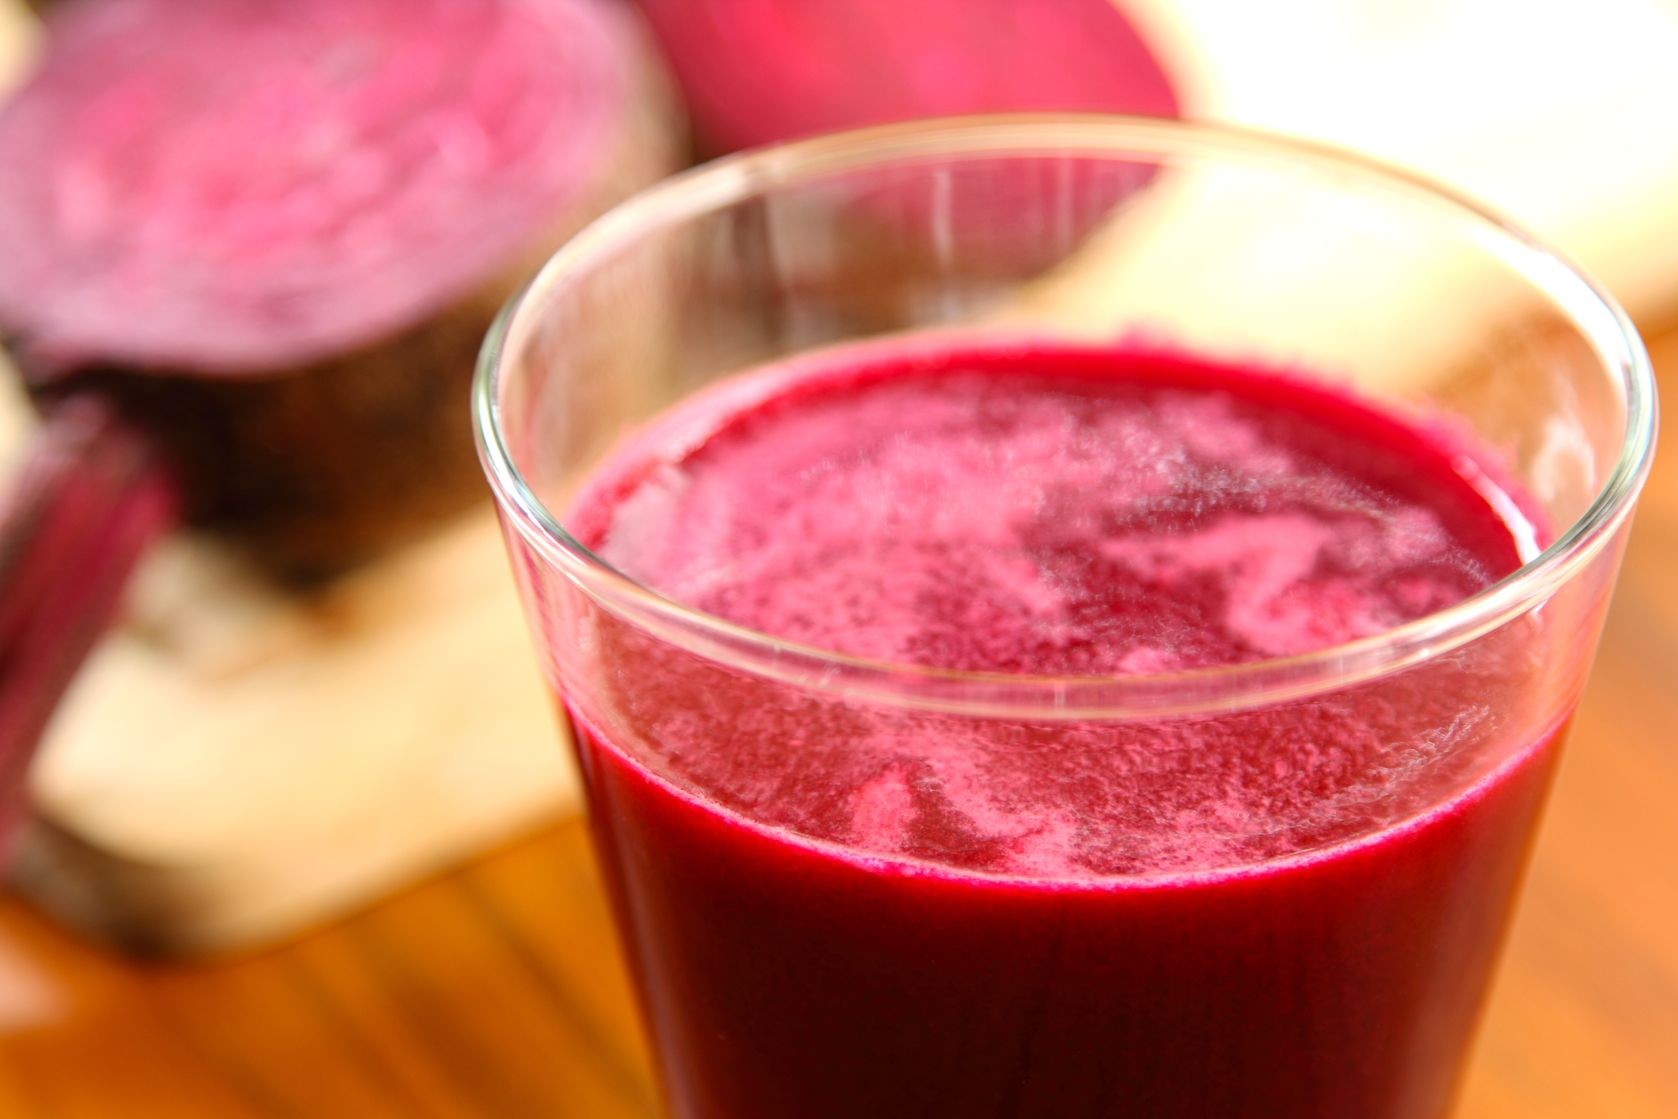 beet root juice improves athletic performance